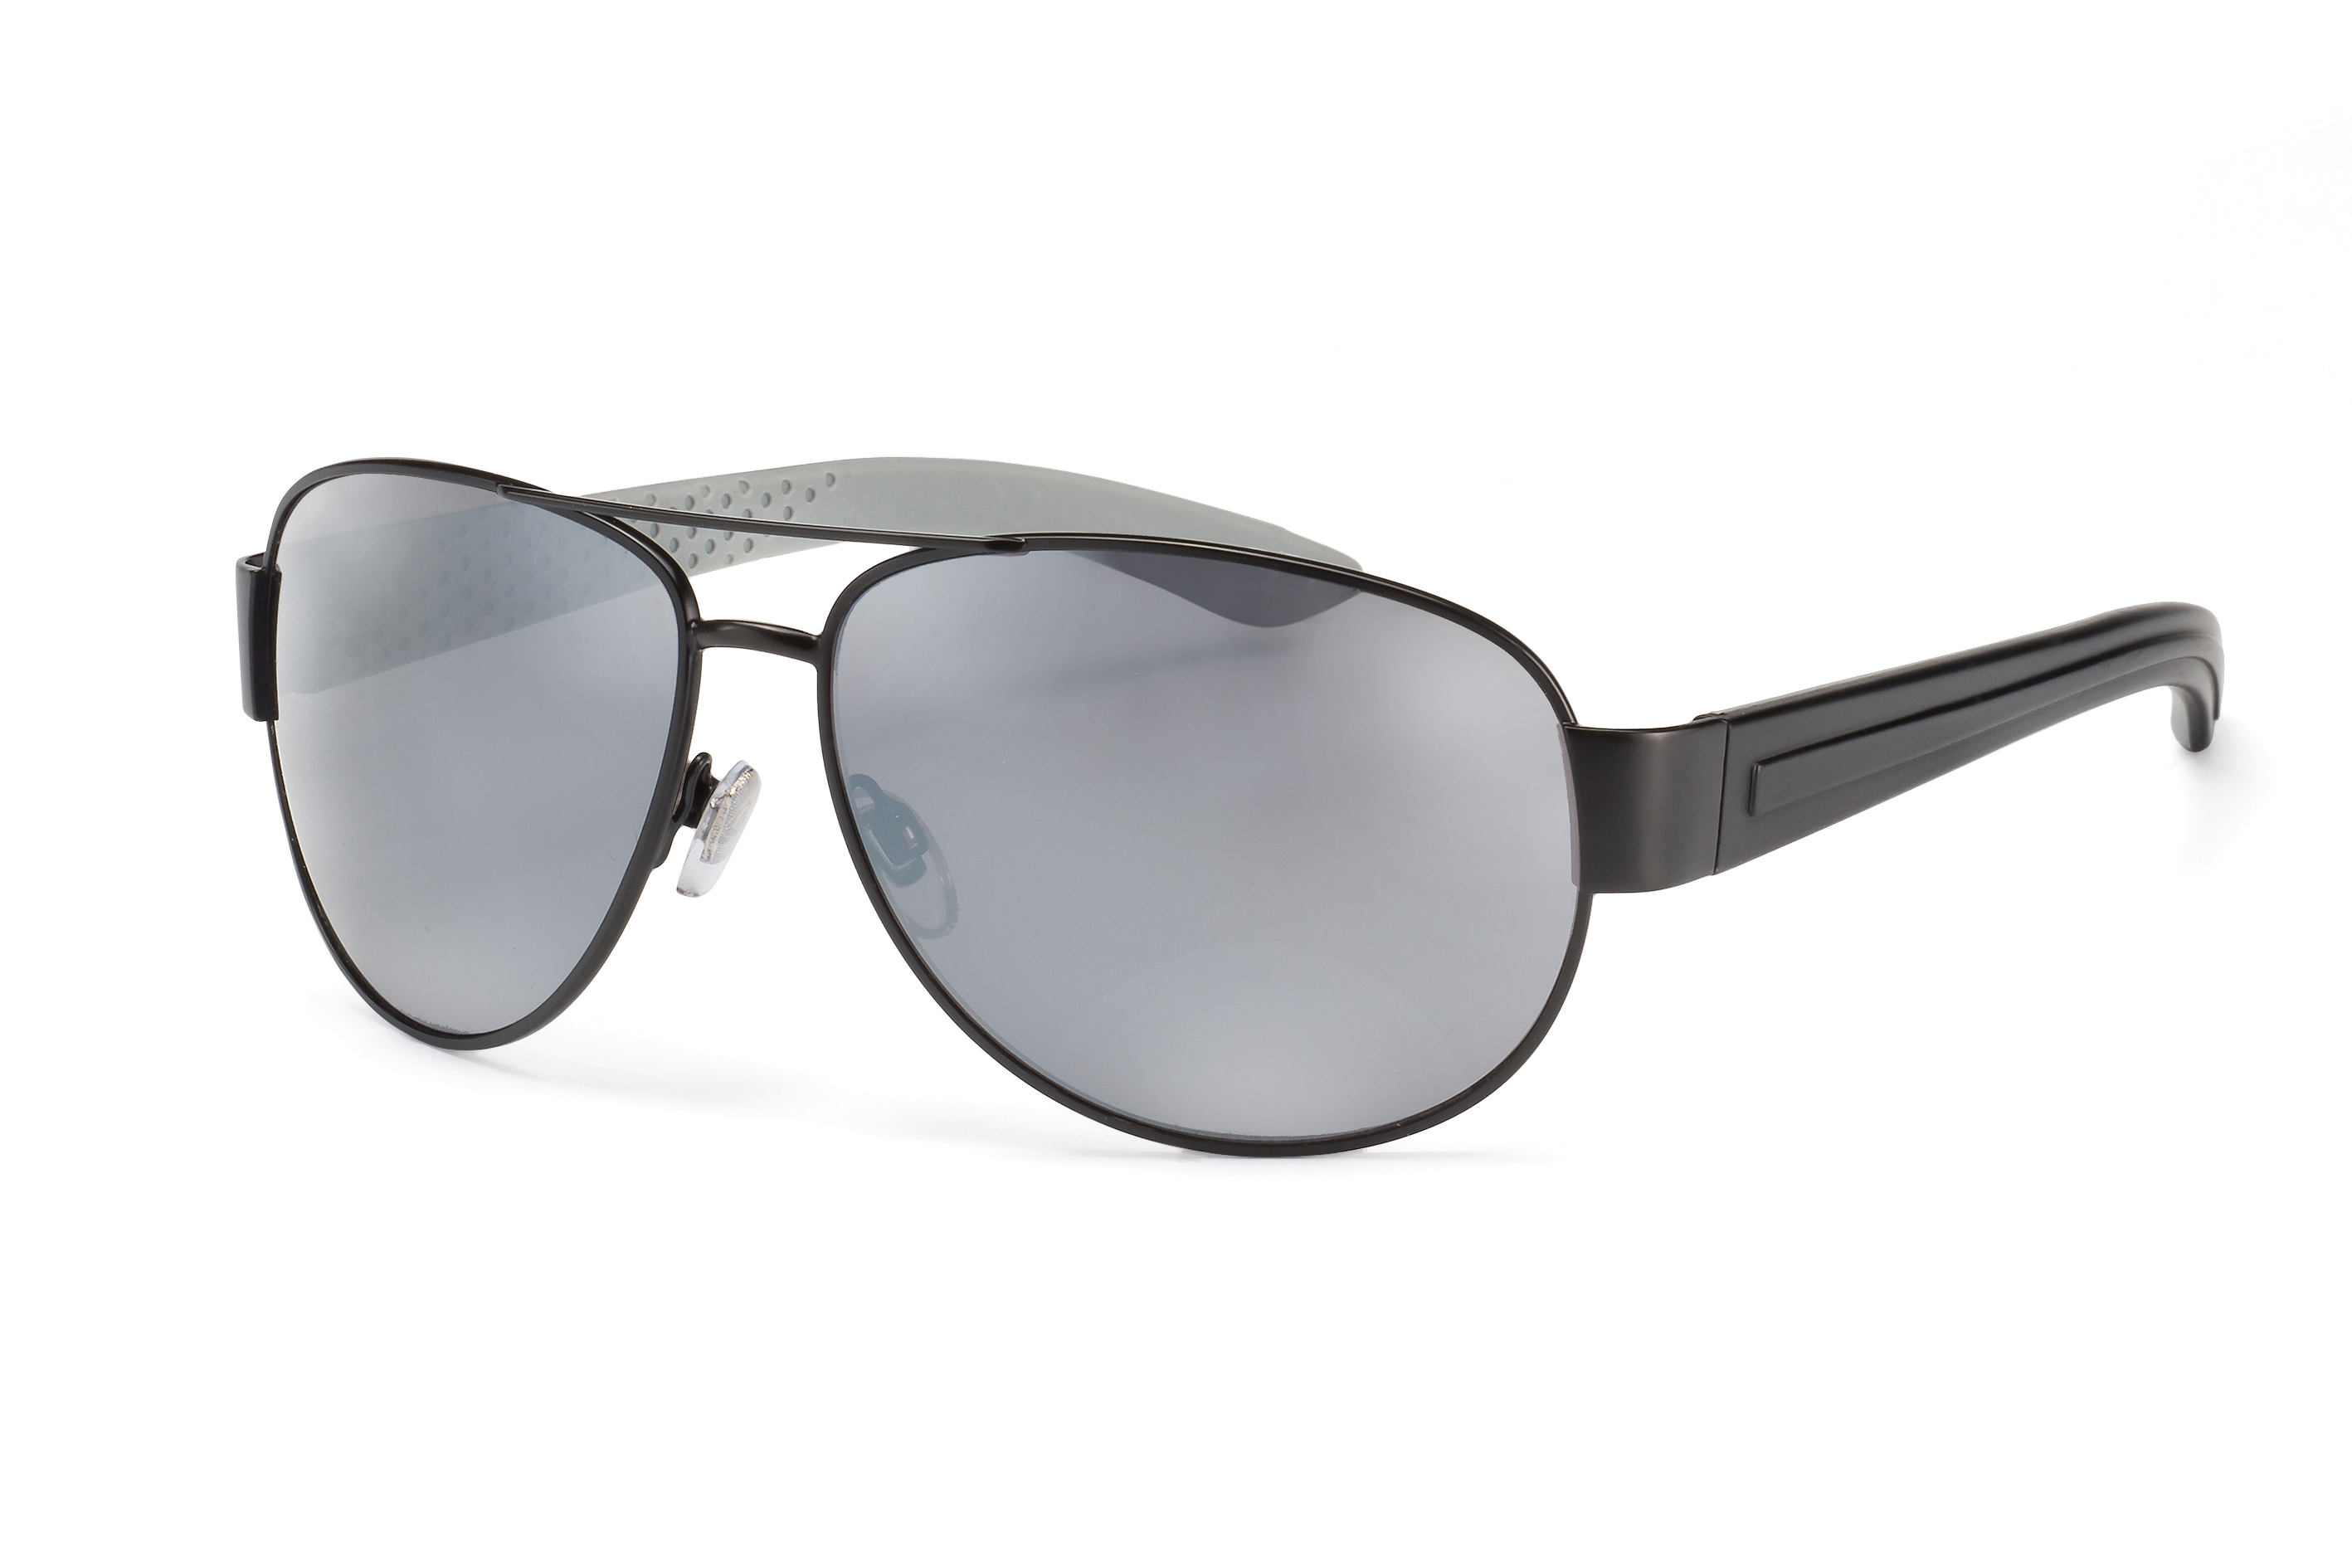 Main view sunglasses 3000617